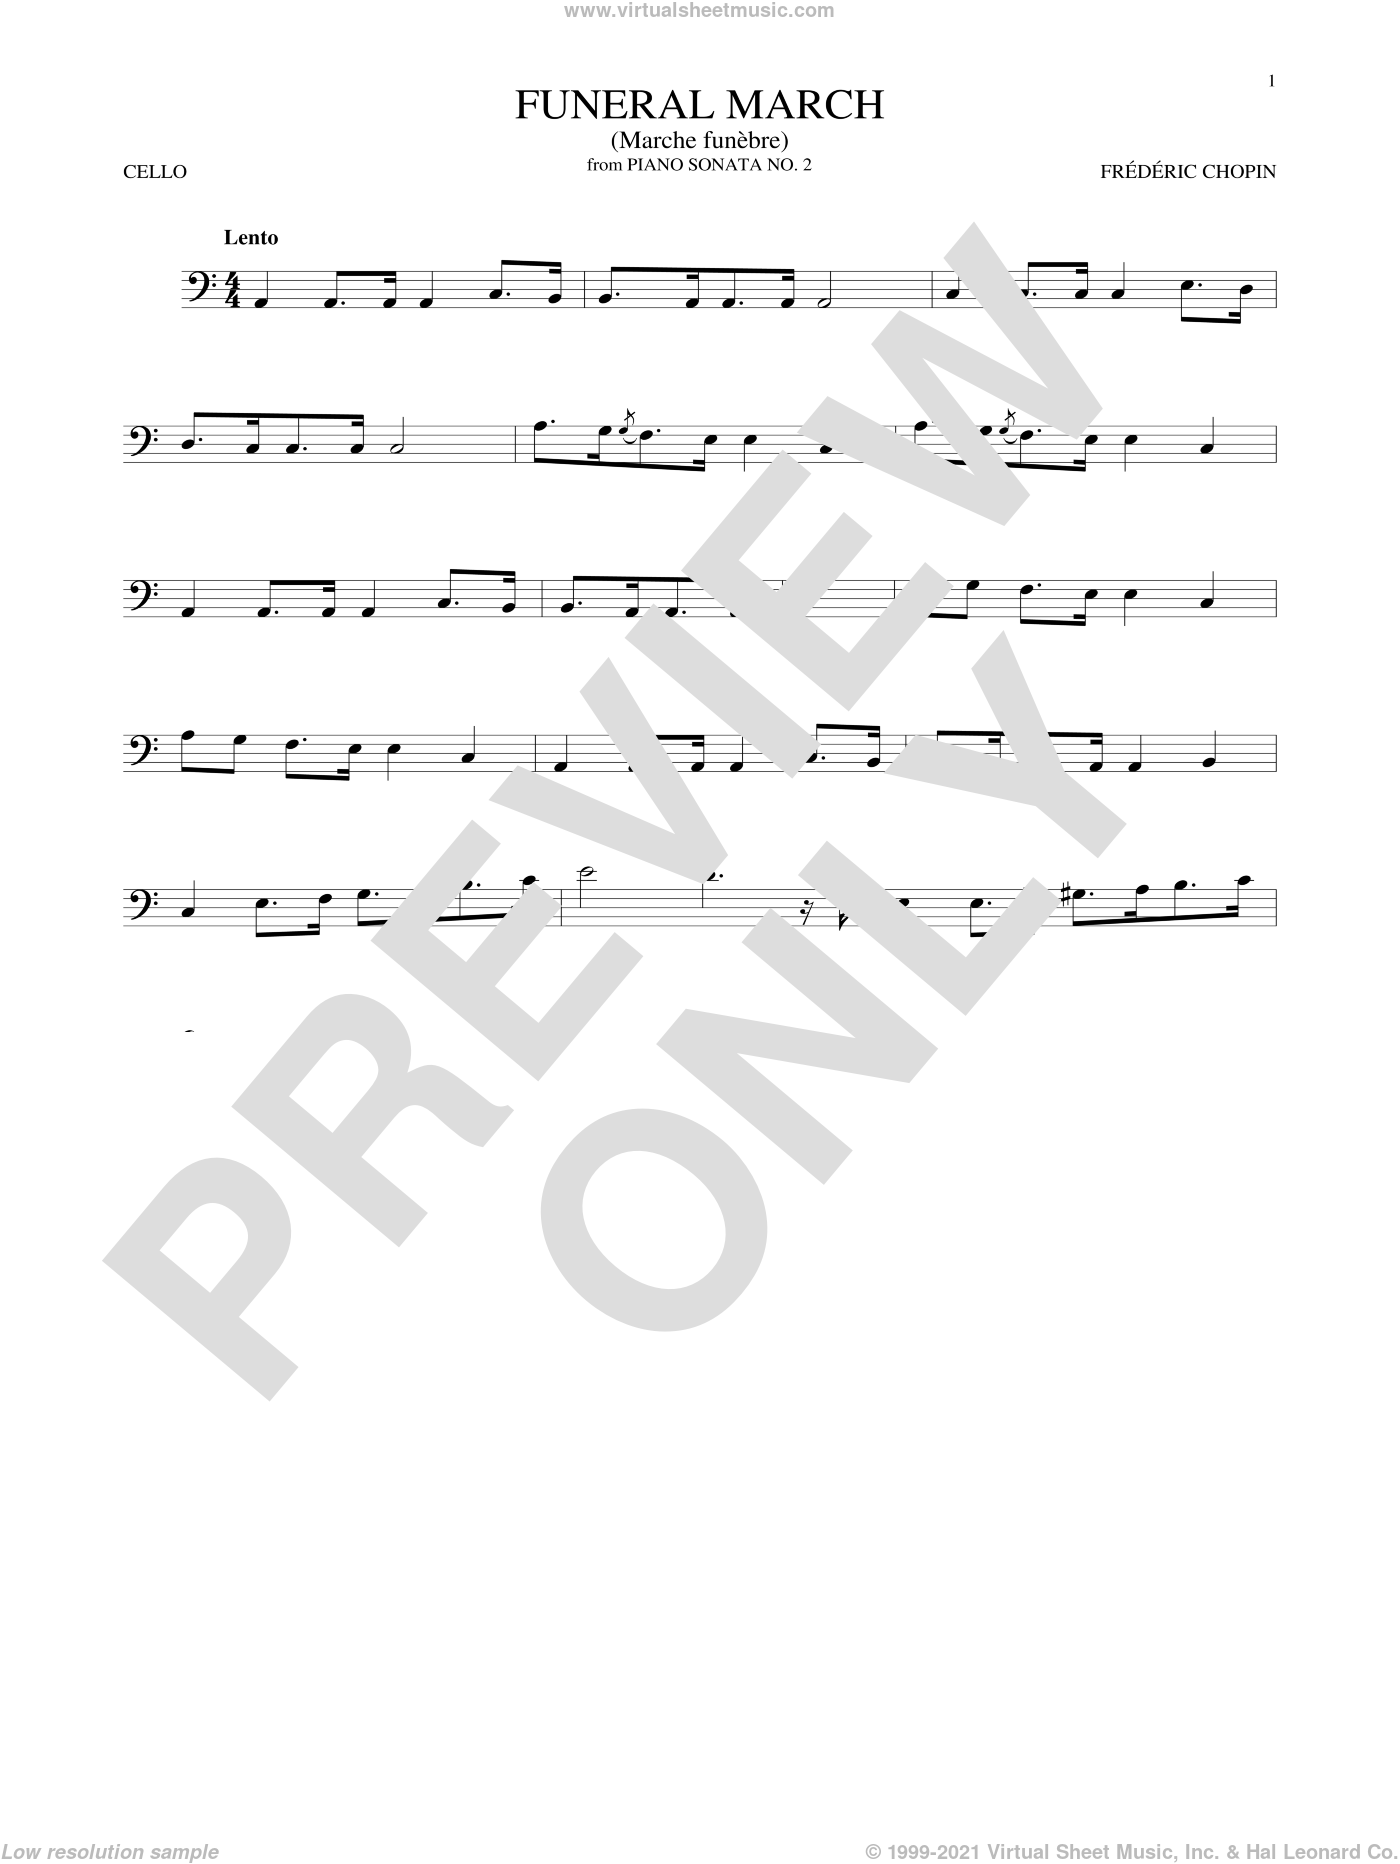 Funeral March sheet music for cello solo by Frederic Chopin, classical score, intermediate skill level